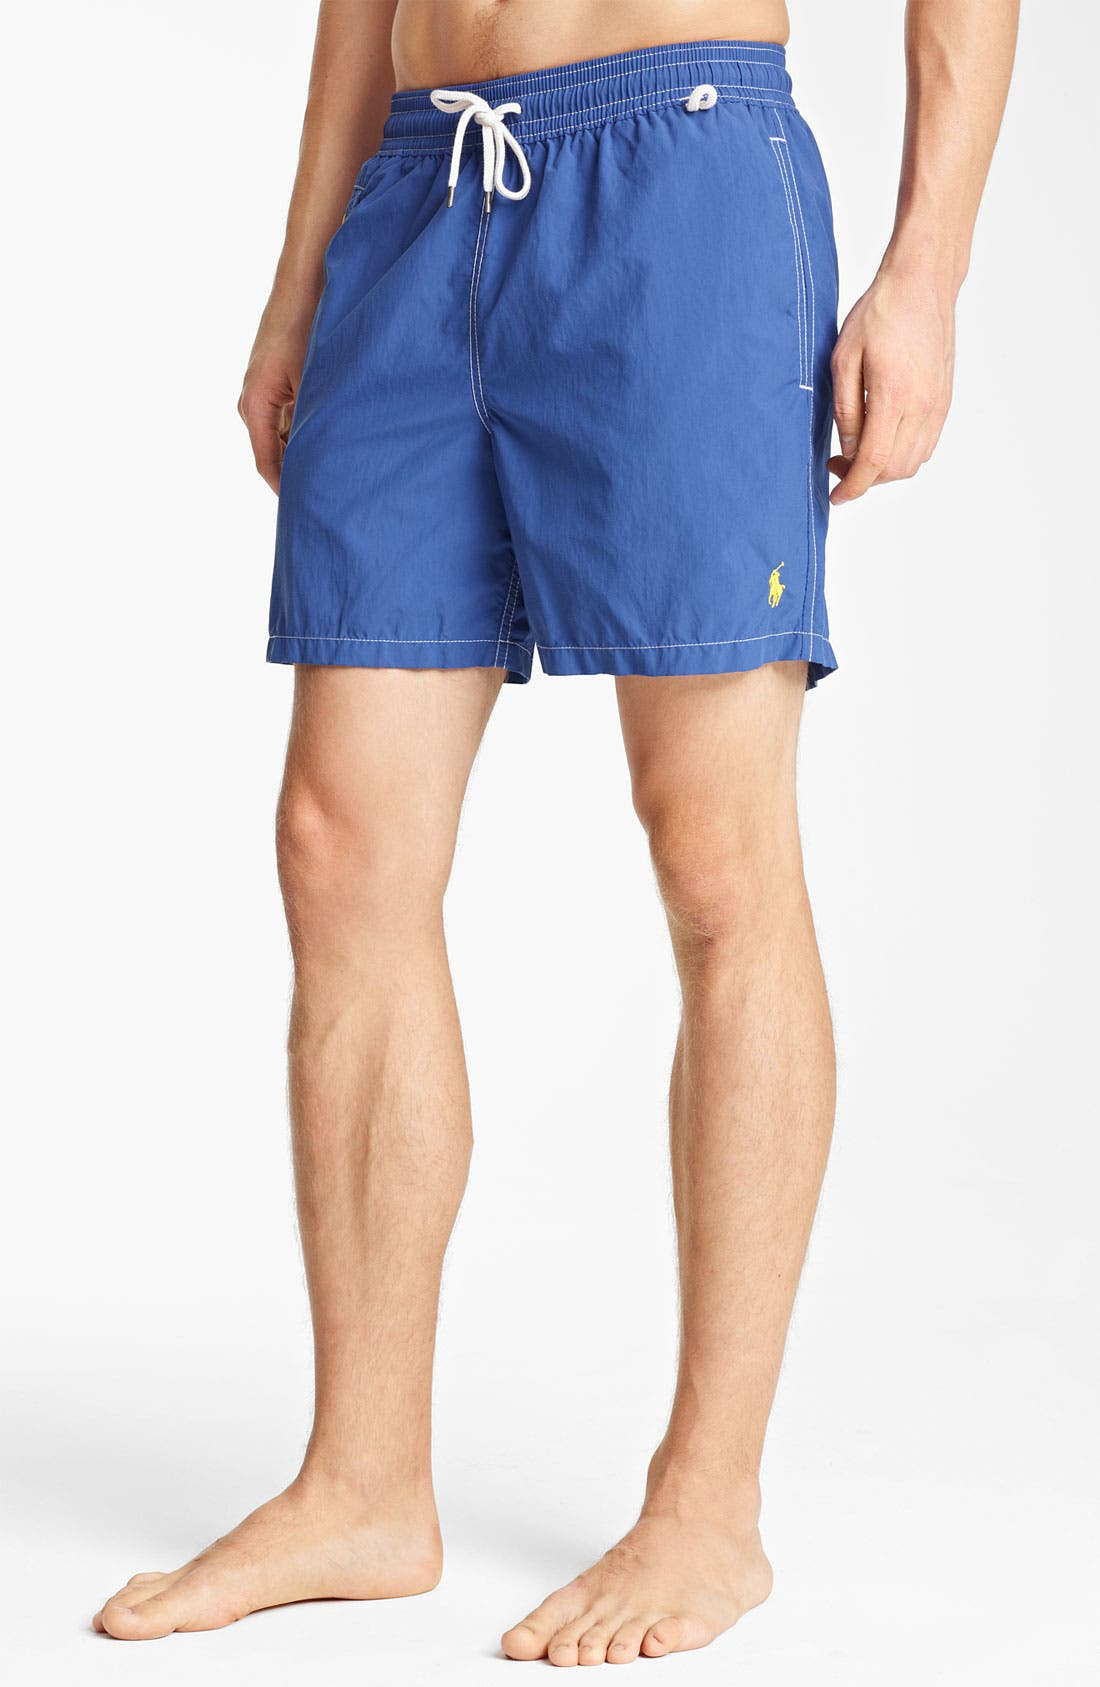 Alternate Image 1 Selected - Polo Ralph Lauren 'Traveler' Volley Swim Shorts